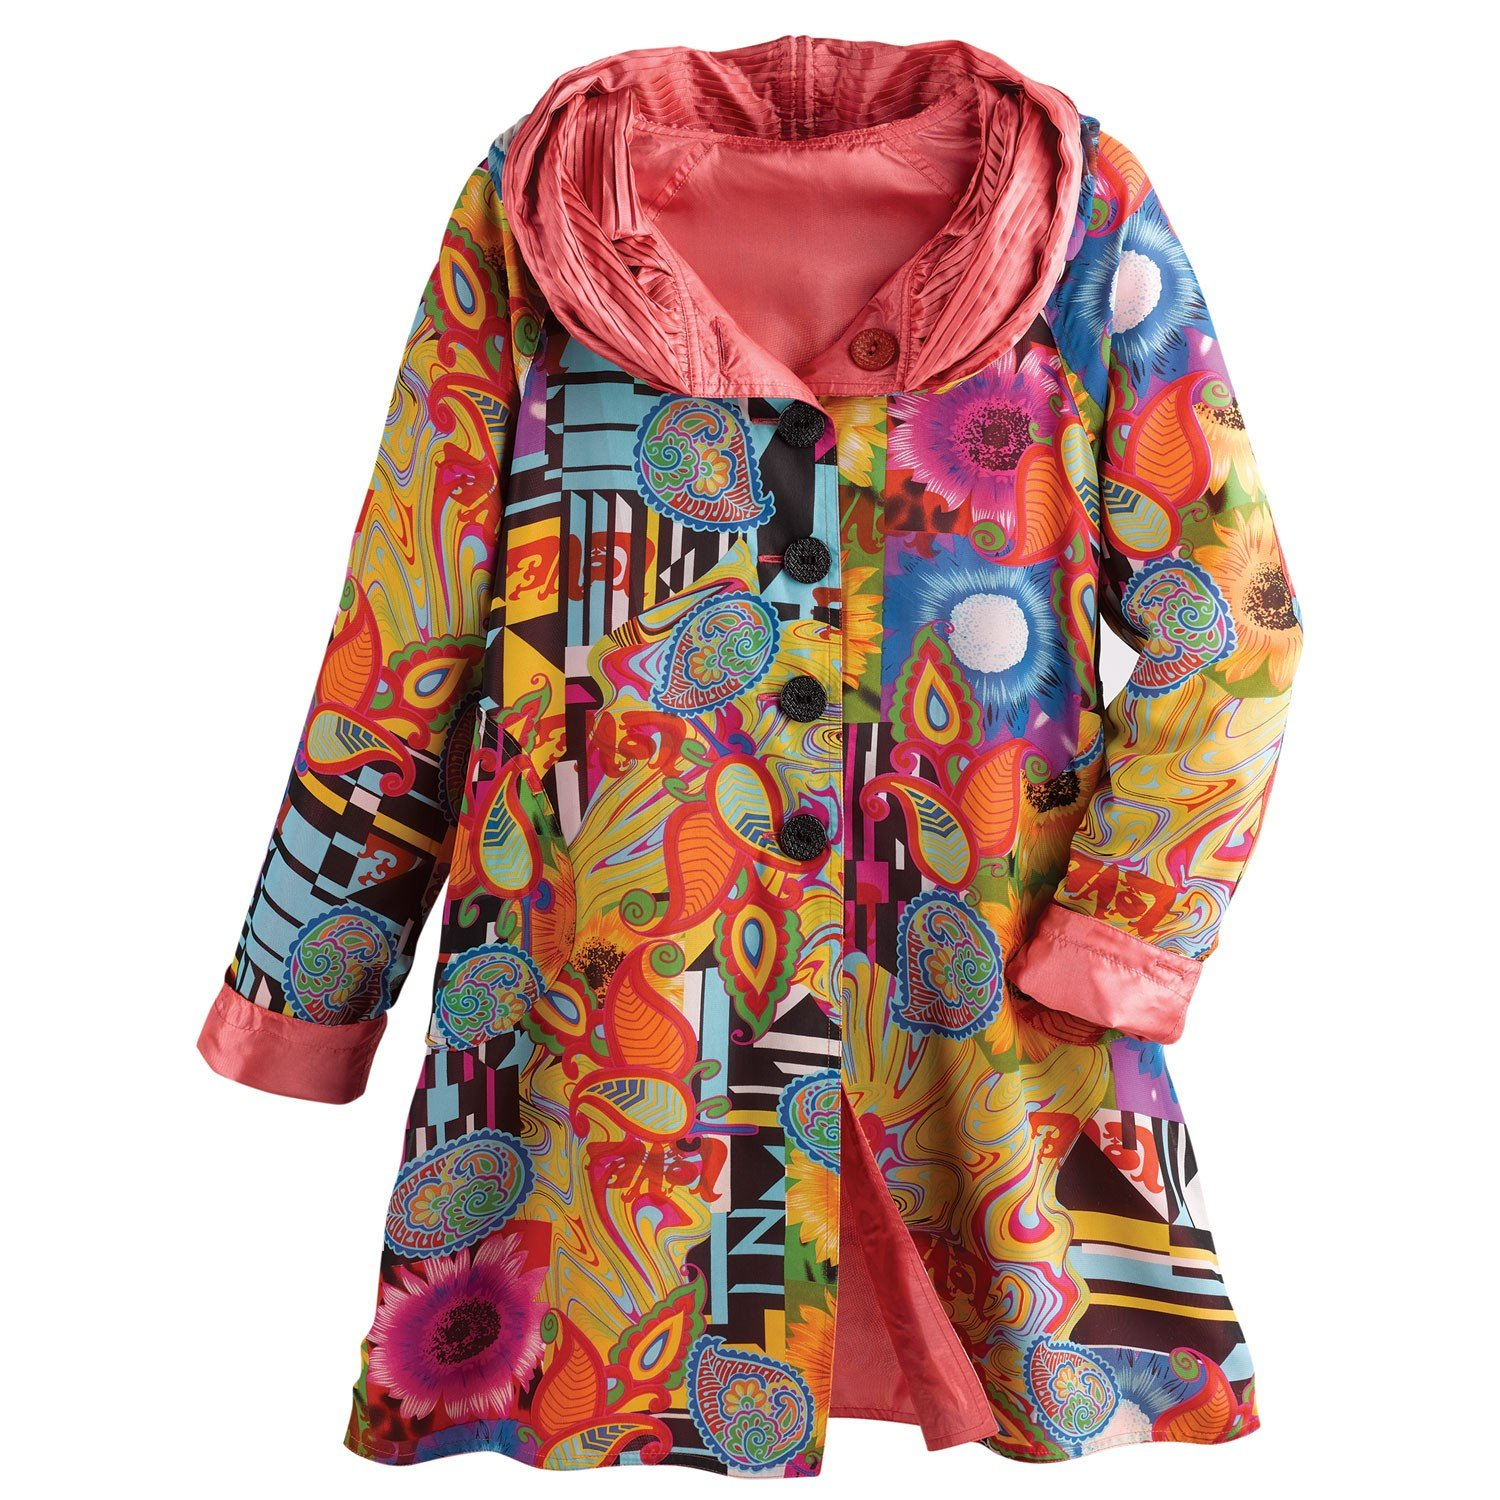 CATALOG CLASSICS Women's Reversible Print-to-Solid Rain Jacket - Button Front - 3X